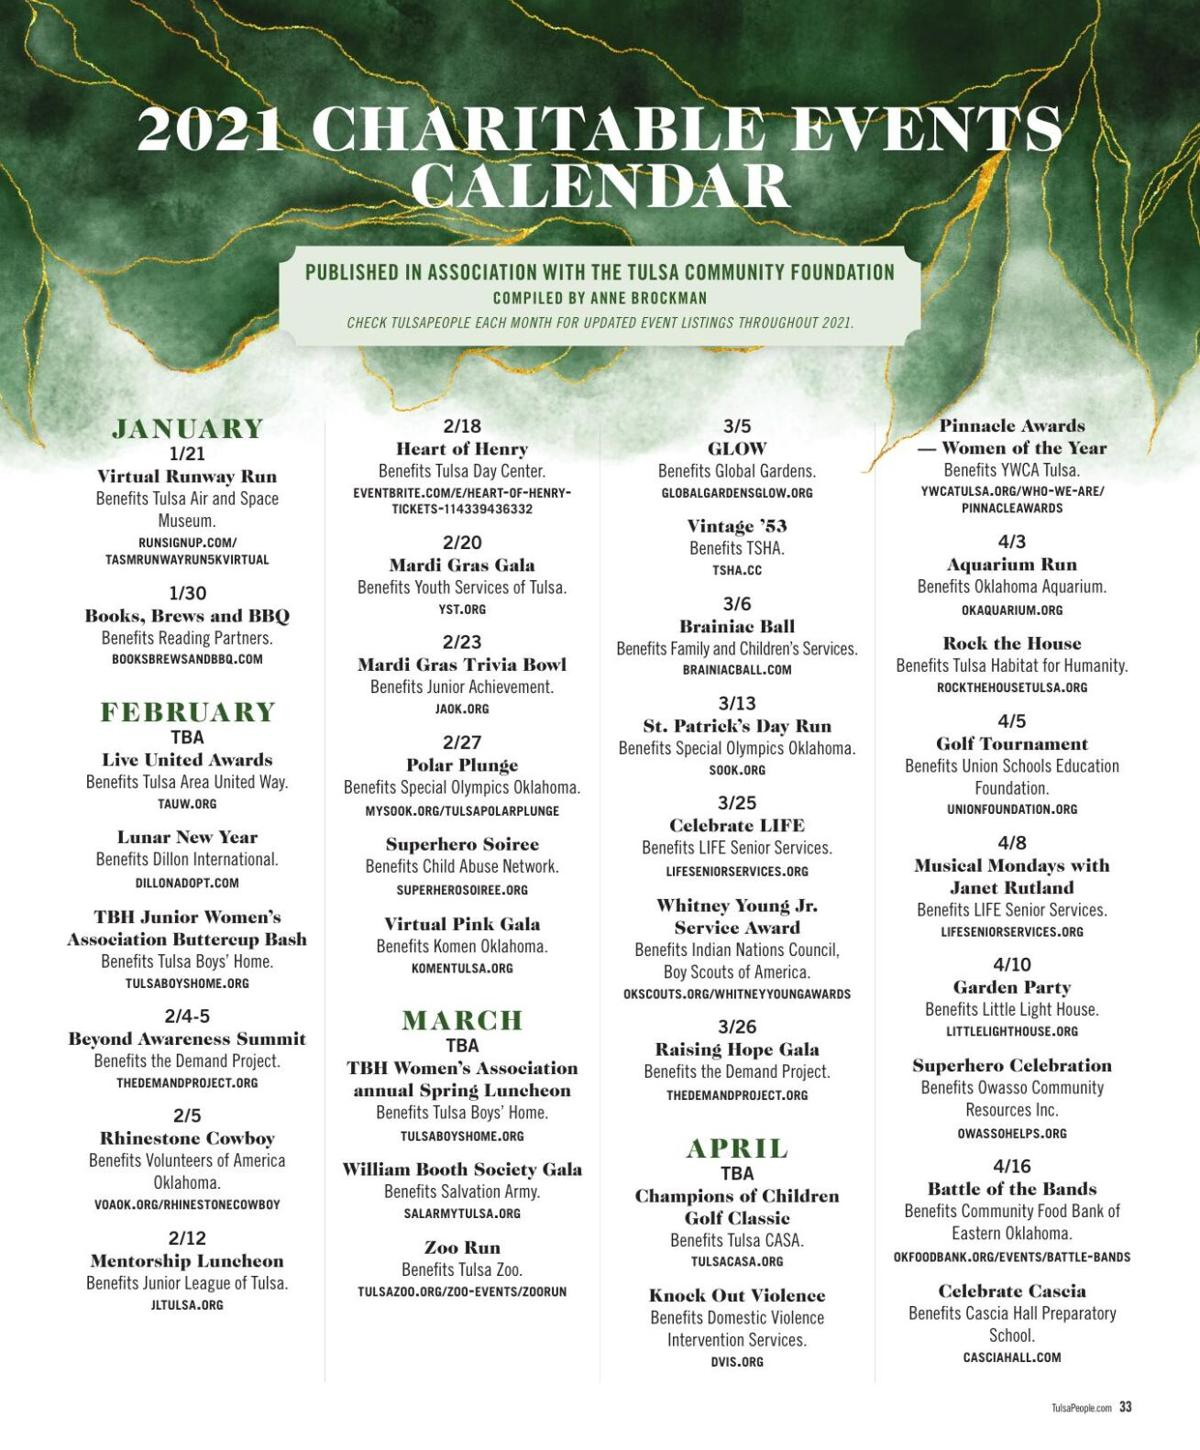 2021 charitable events calendar